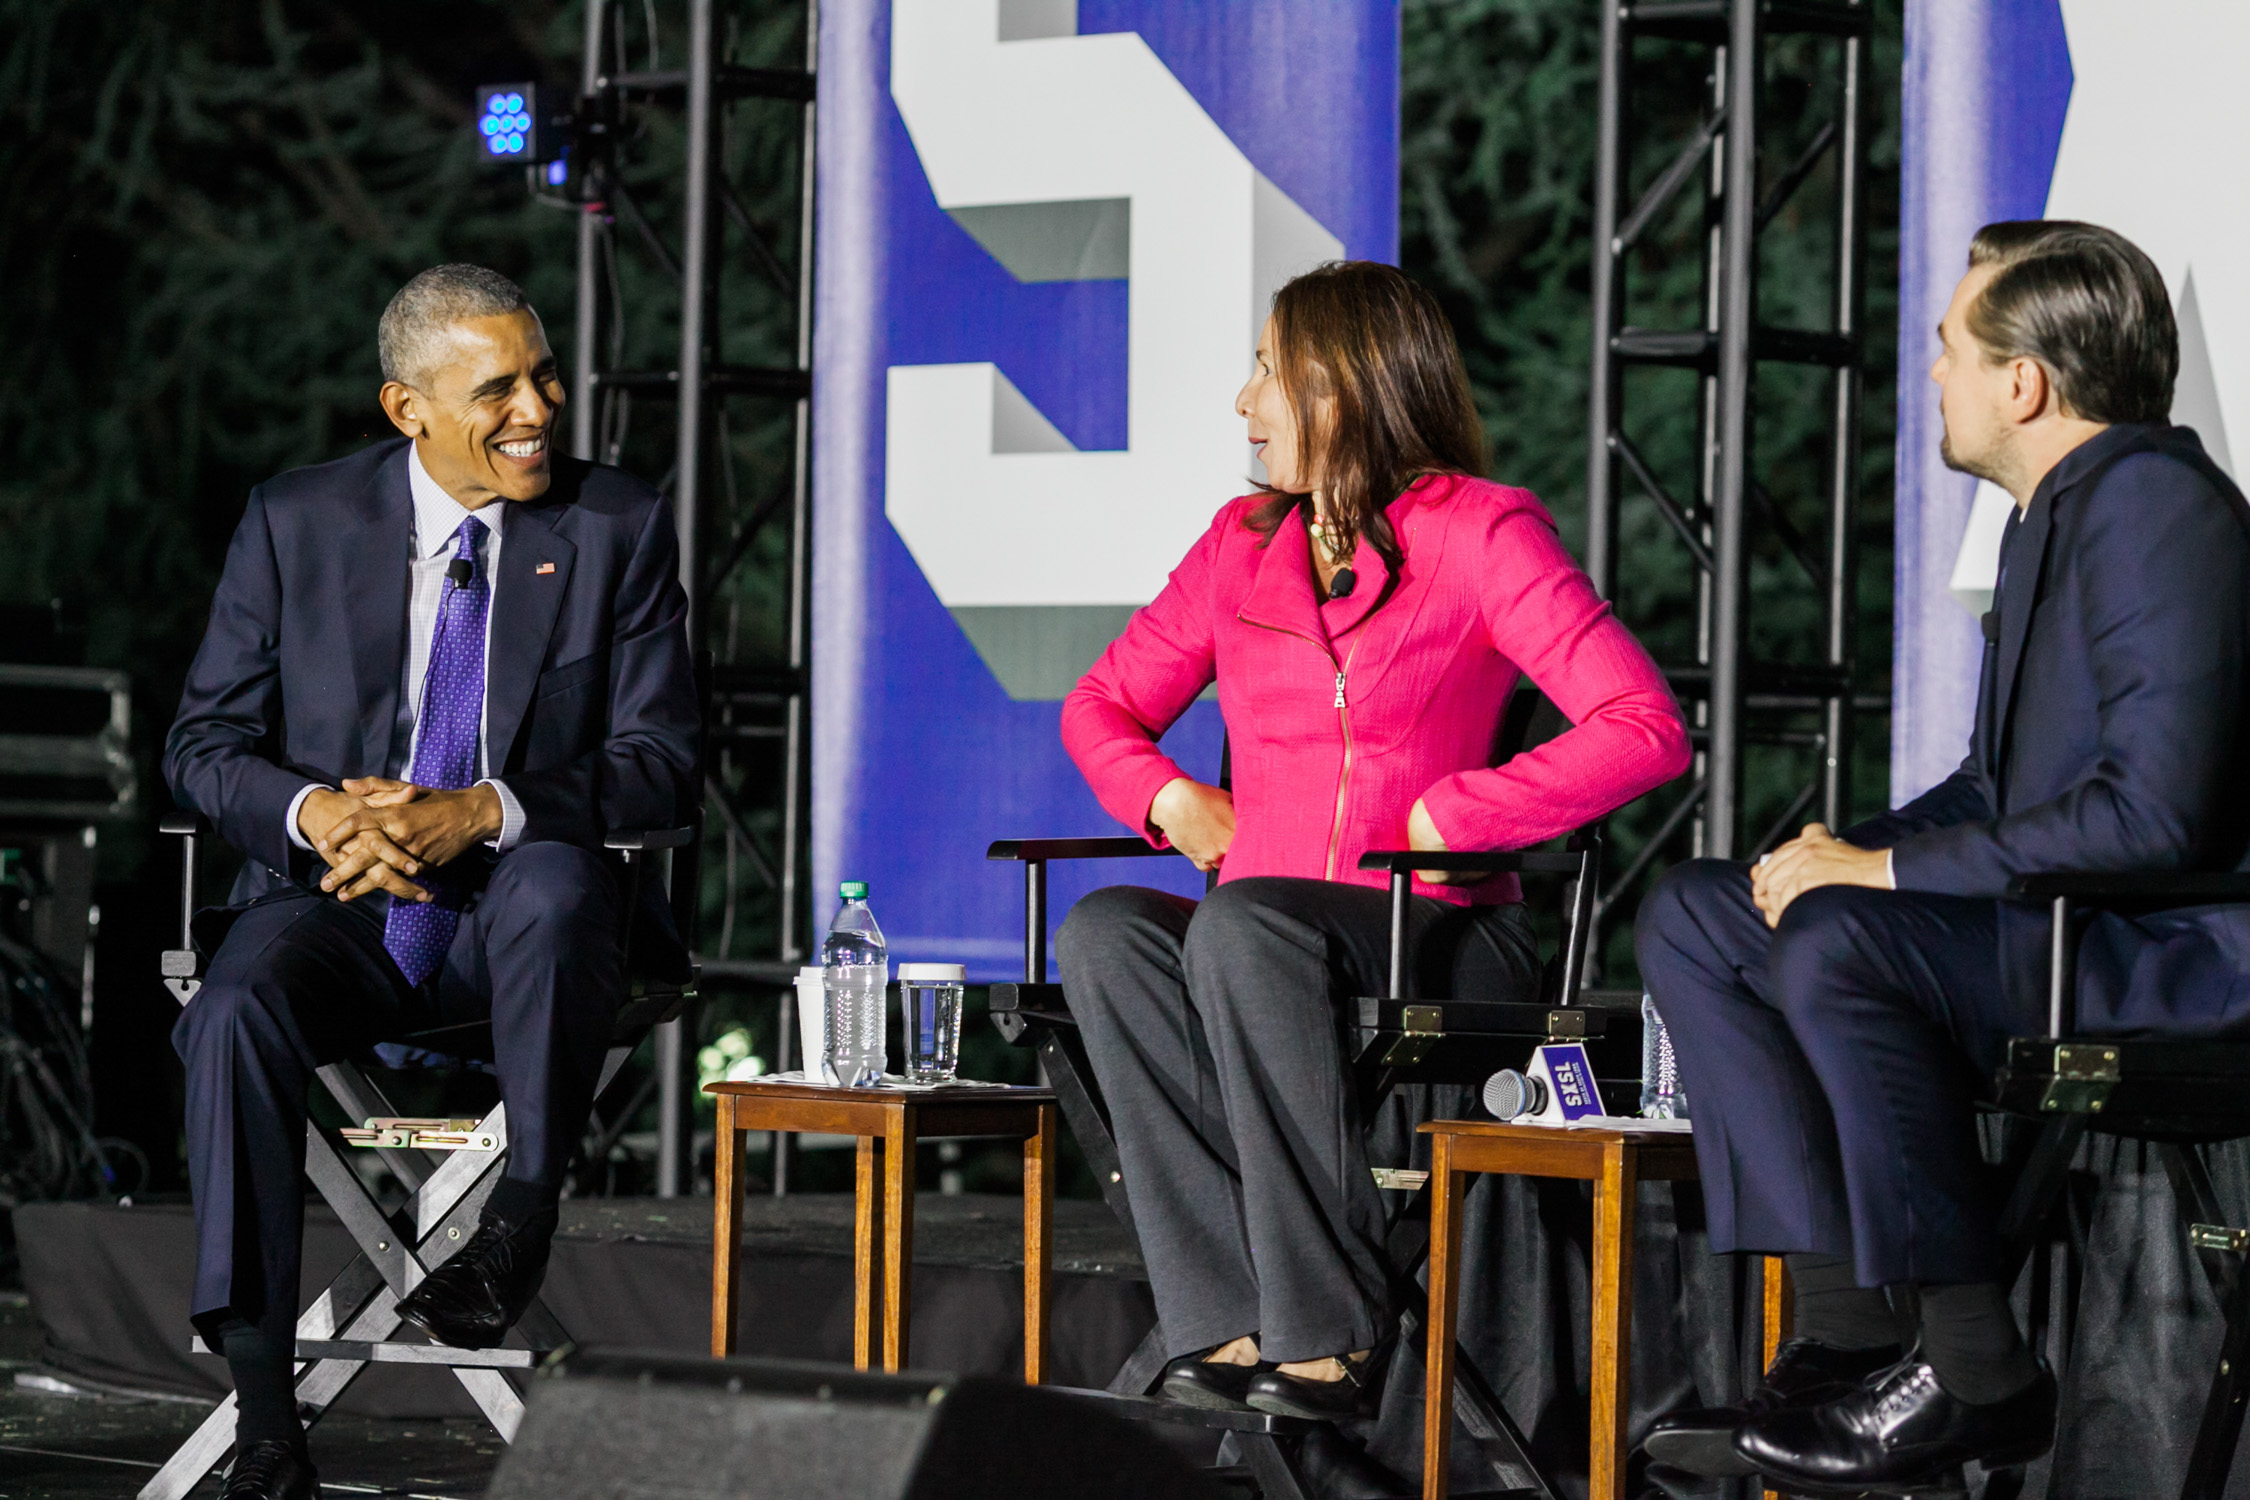 image of President Barack Obama Katherine Hayhoe and Leonardo DiCaprio at SXSW festival during Obama Administration on South Lawn of the White House